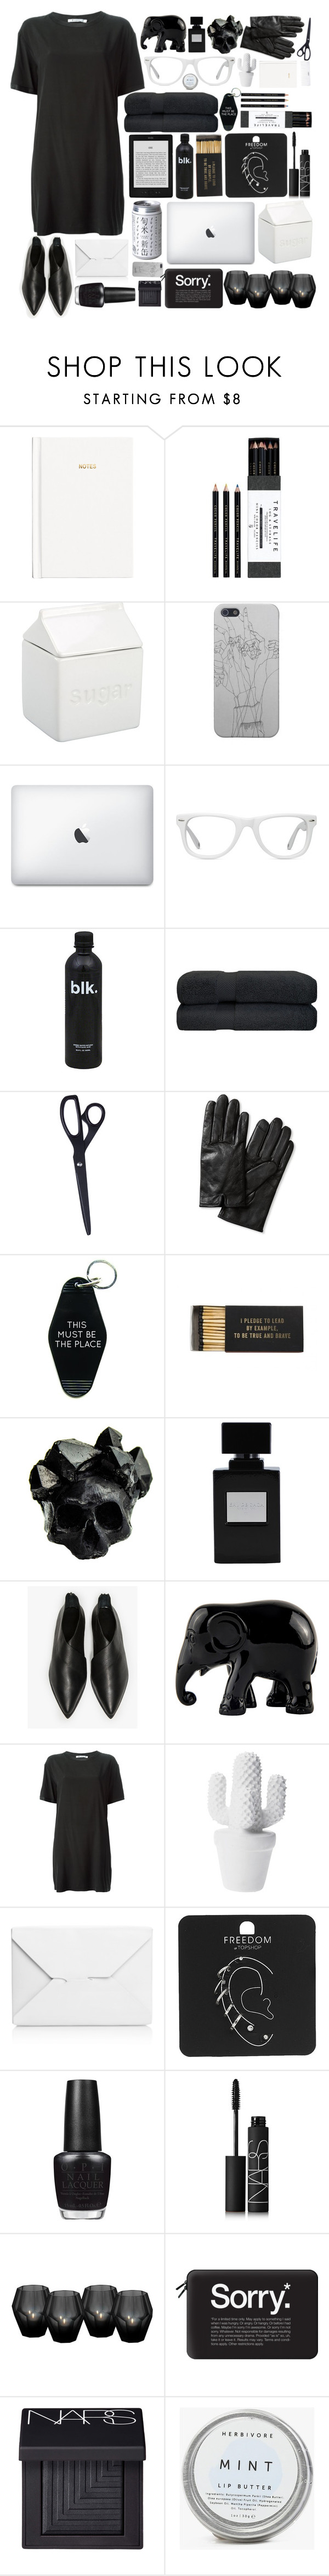 """""""Coco"""" by living-colorfully ❤ liked on Polyvore featuring H&M, Mark's Tokyo Edge, BIA Cordon Bleu, Muse, HAY, Banana Republic, Three Potato Four, Jayson Home, Macabre Gadgets and Alpine"""